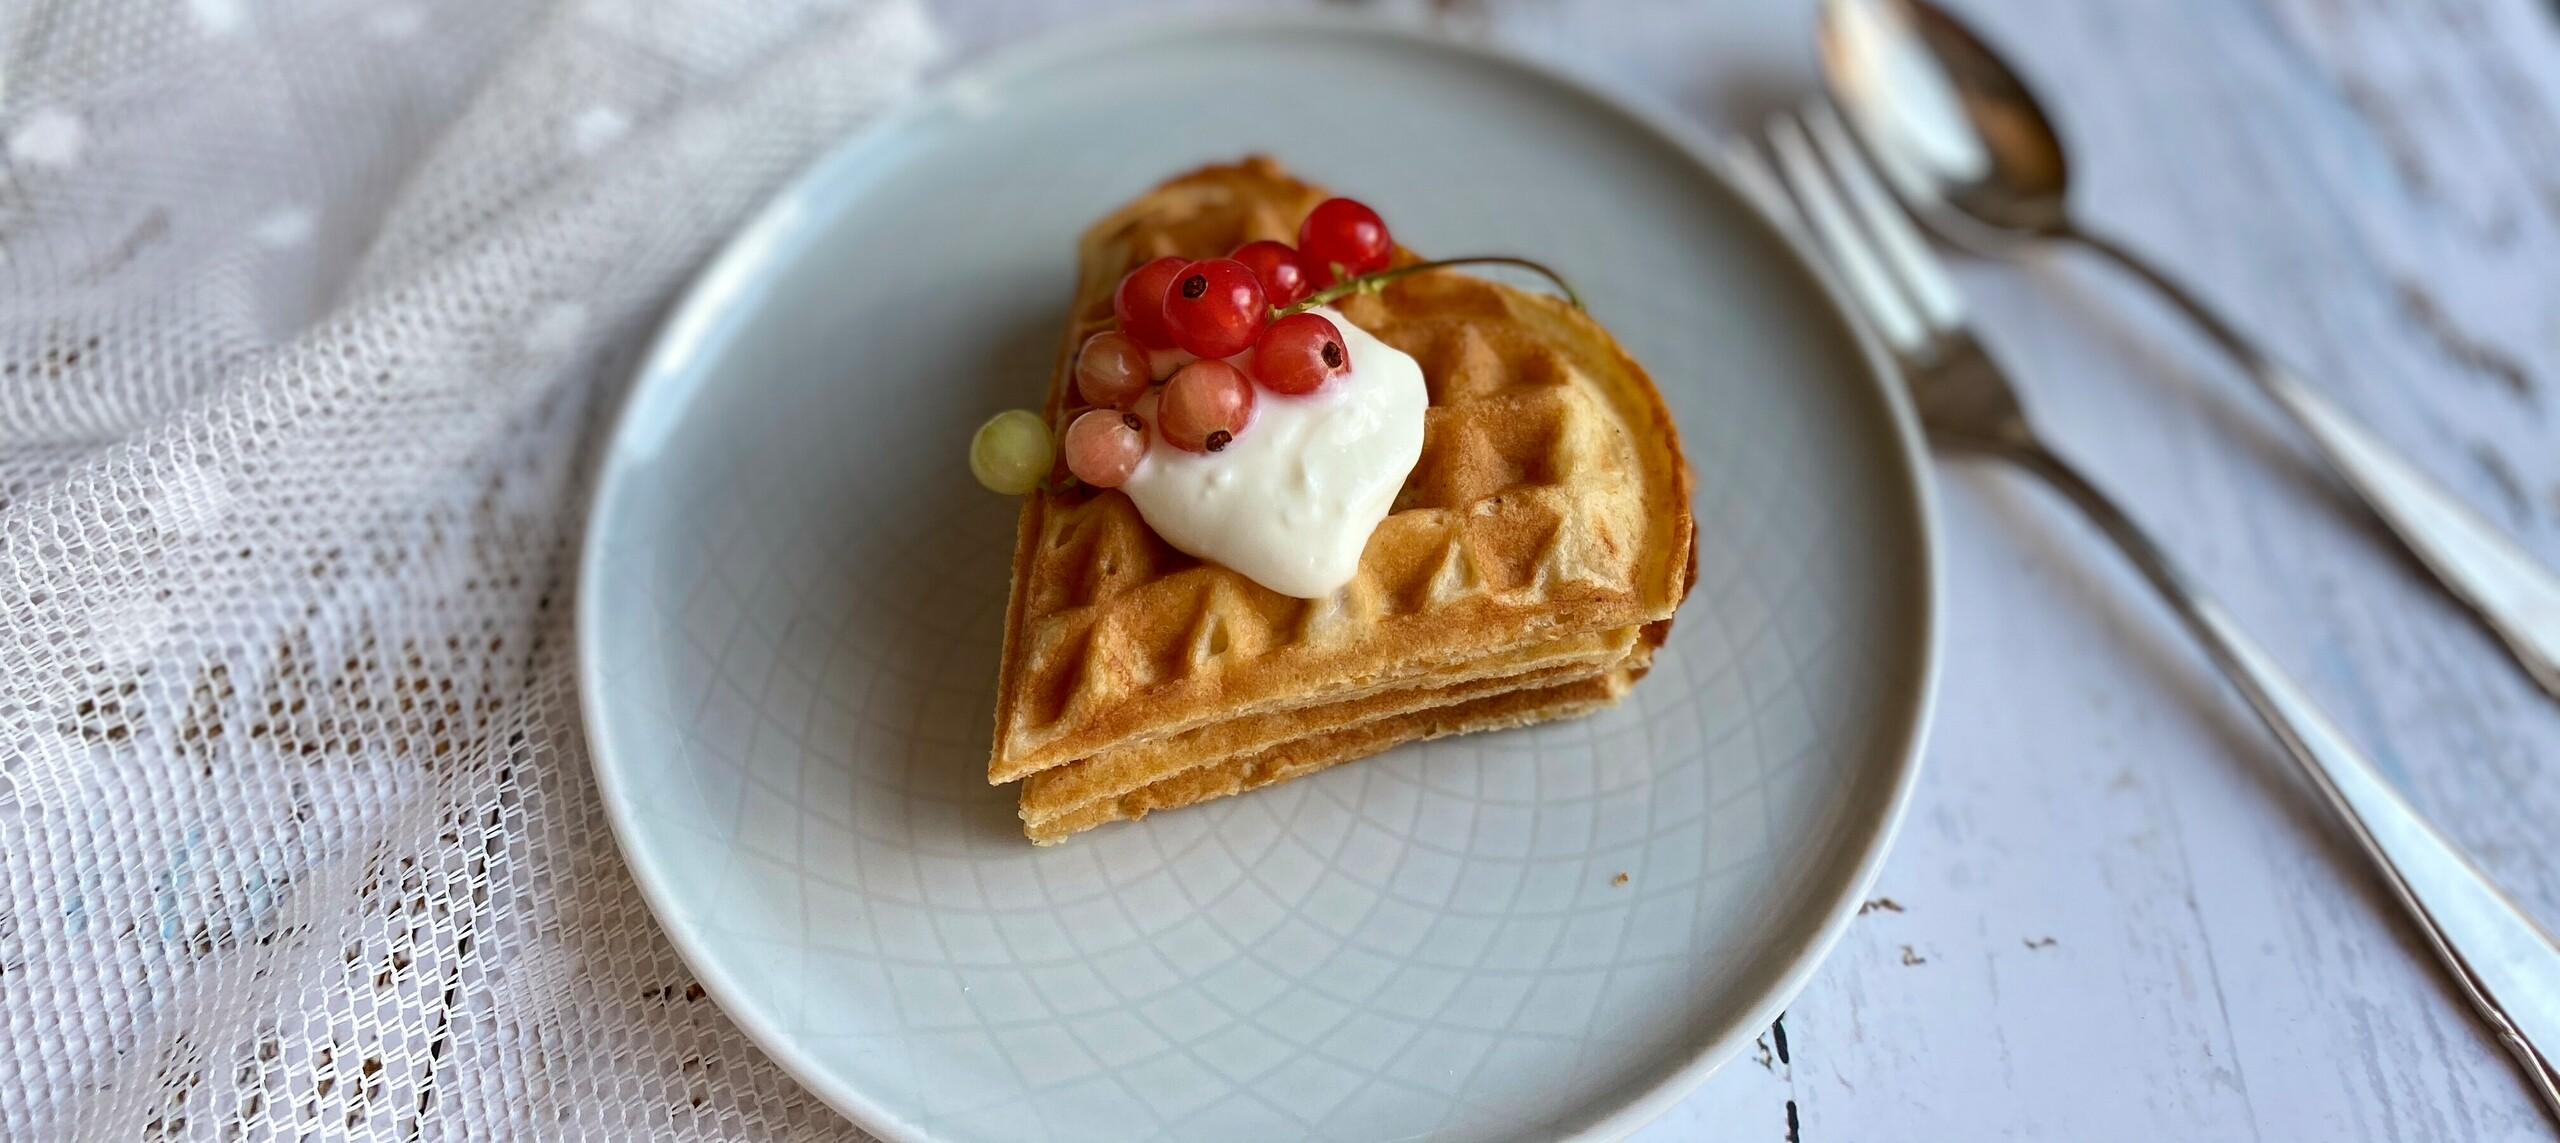 Picture Oat bran waffles with sour cream close up